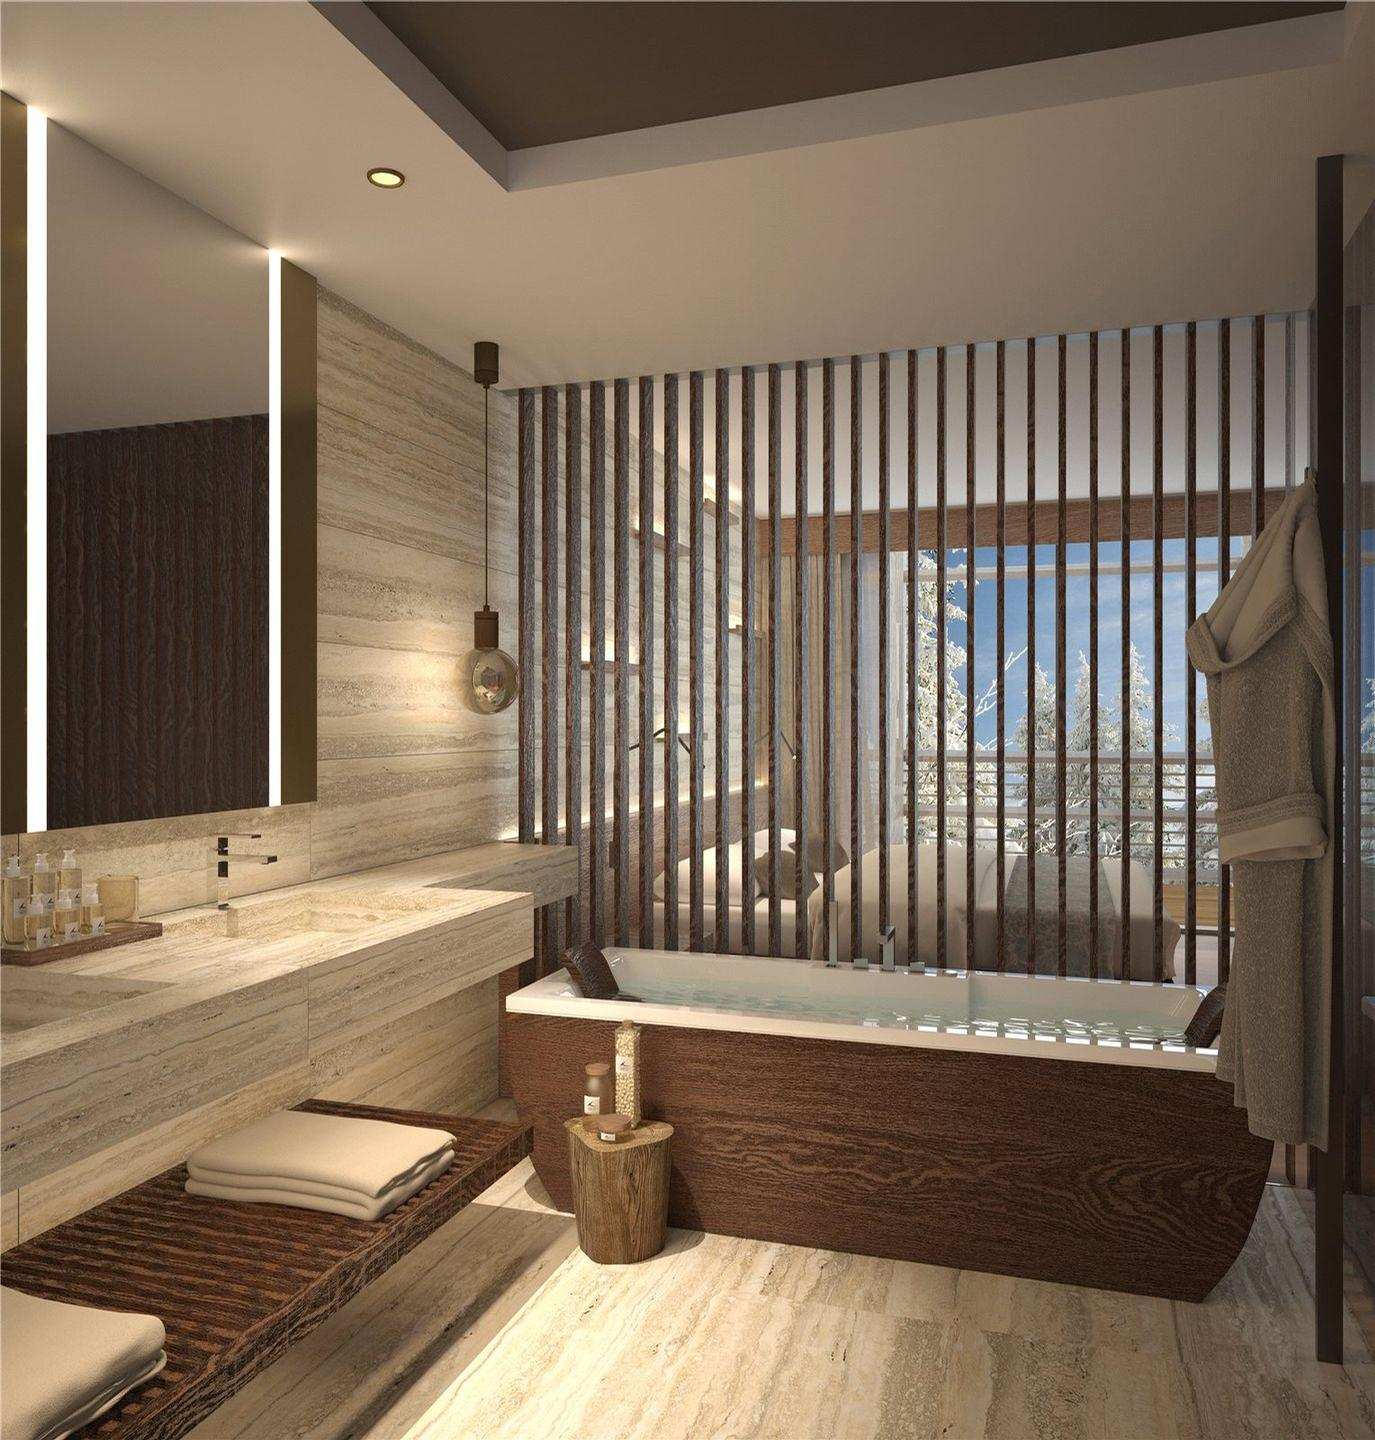 All rooms will be fitted with chronotherapeutic lighting; three-bedroom apartments and penthouses will also have Finnish saunas. / Courtesy of Lefay Resorts